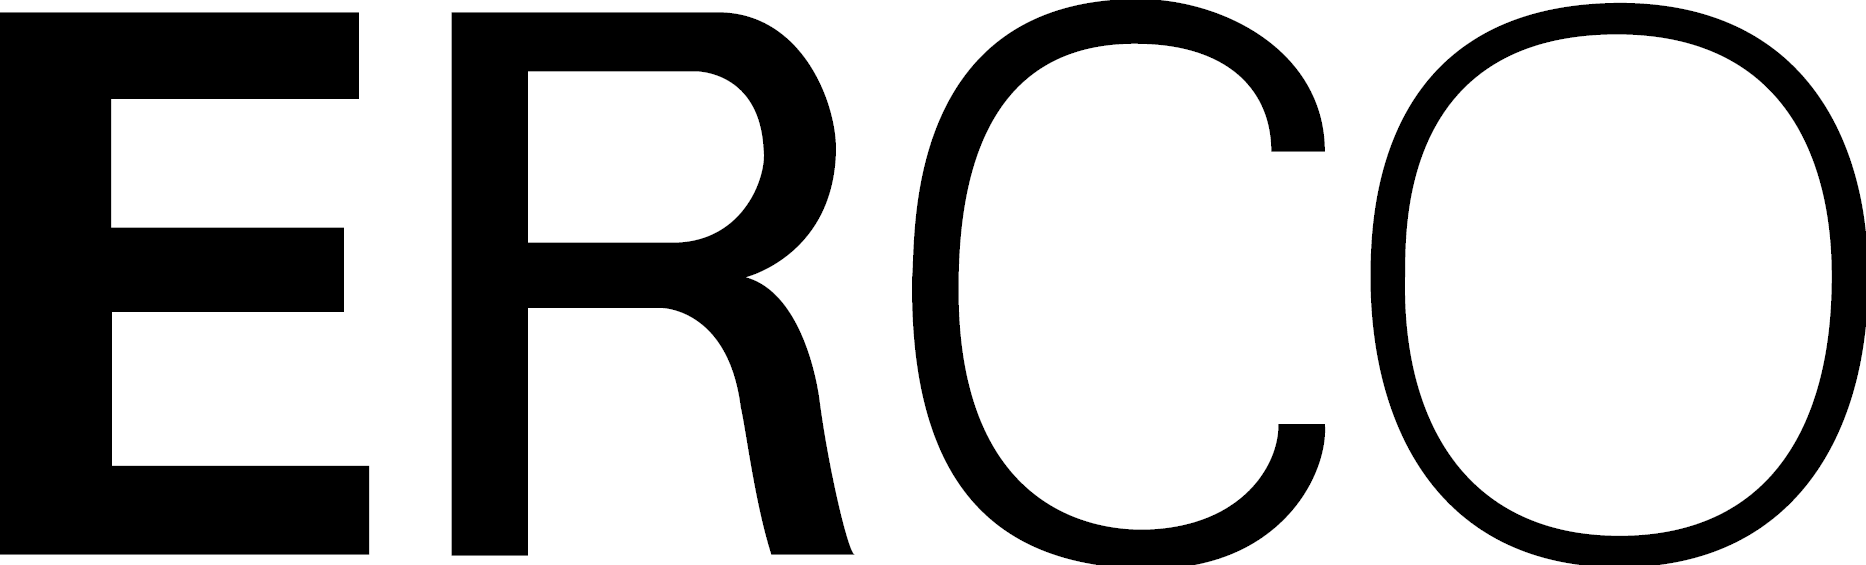 ERCO_Logo_6mm_black